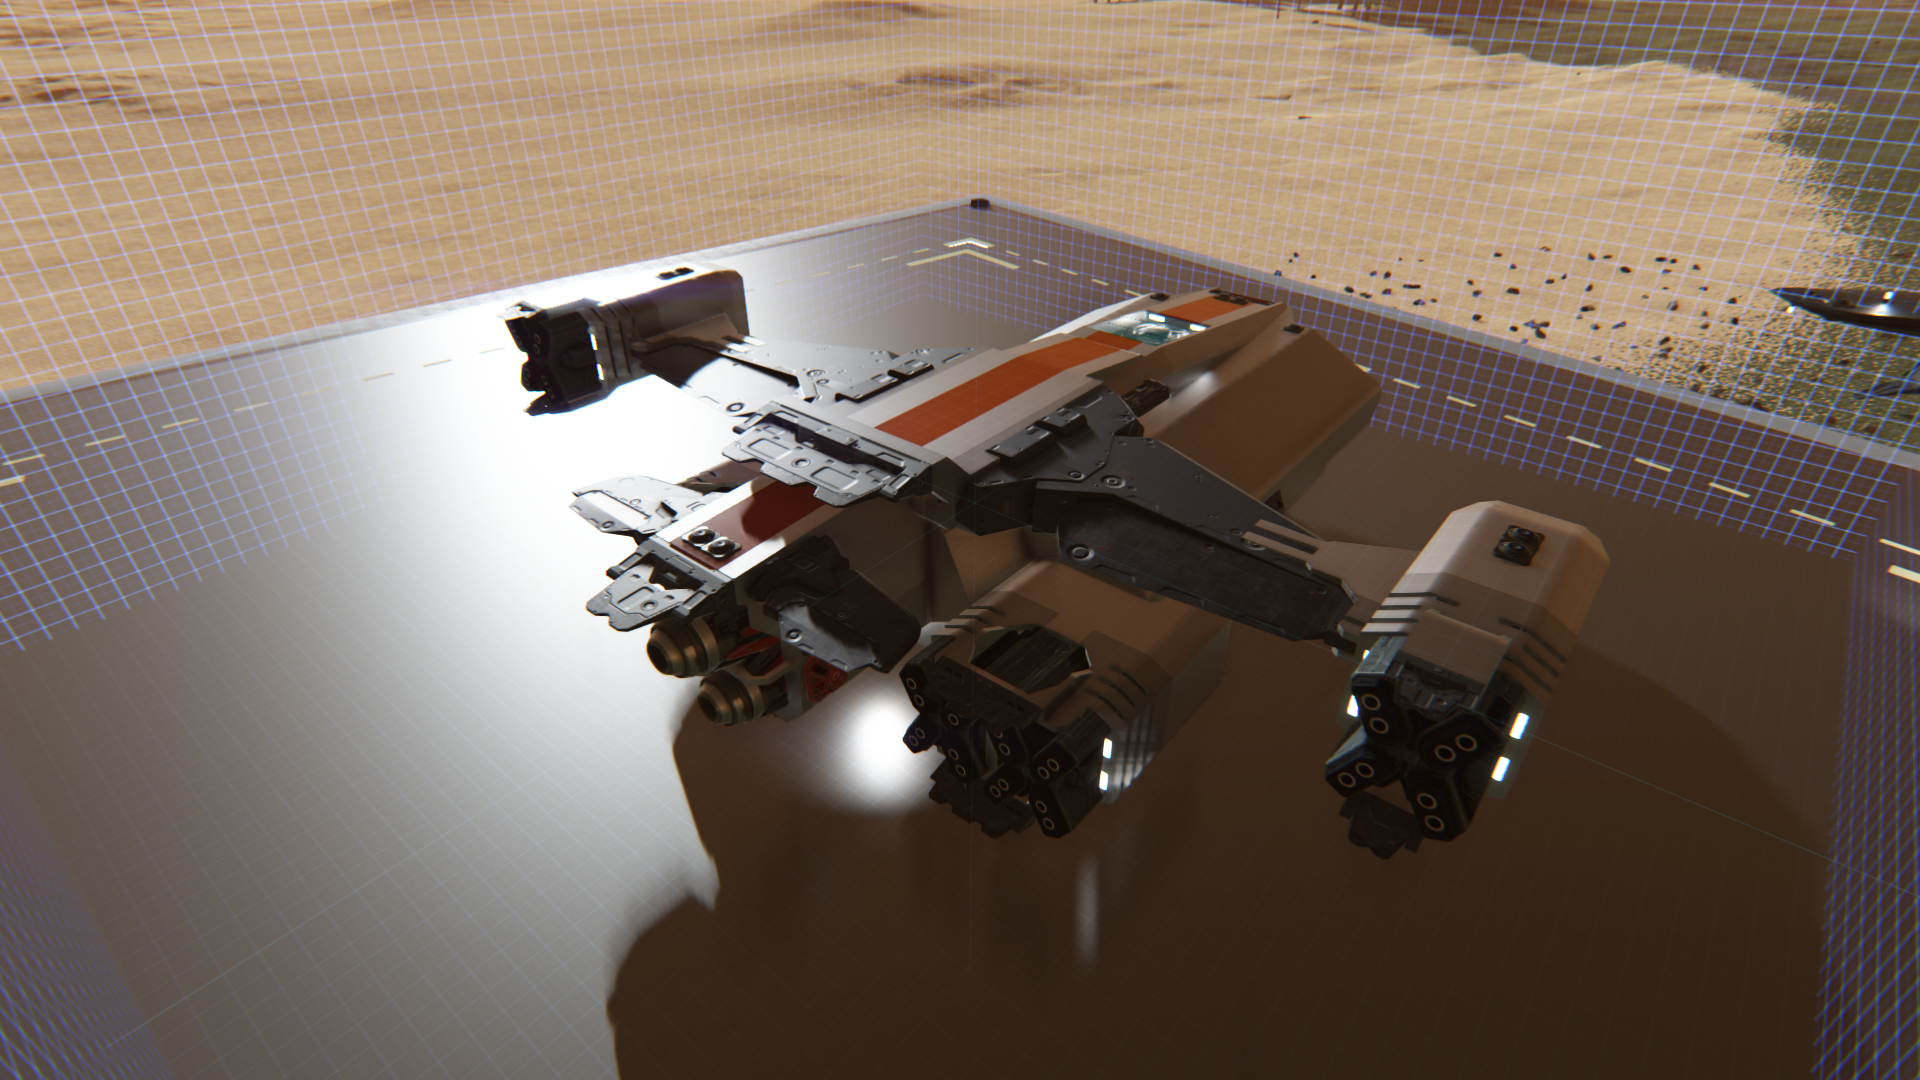 dualuniverse_2020-10-08t20h30m50s.png